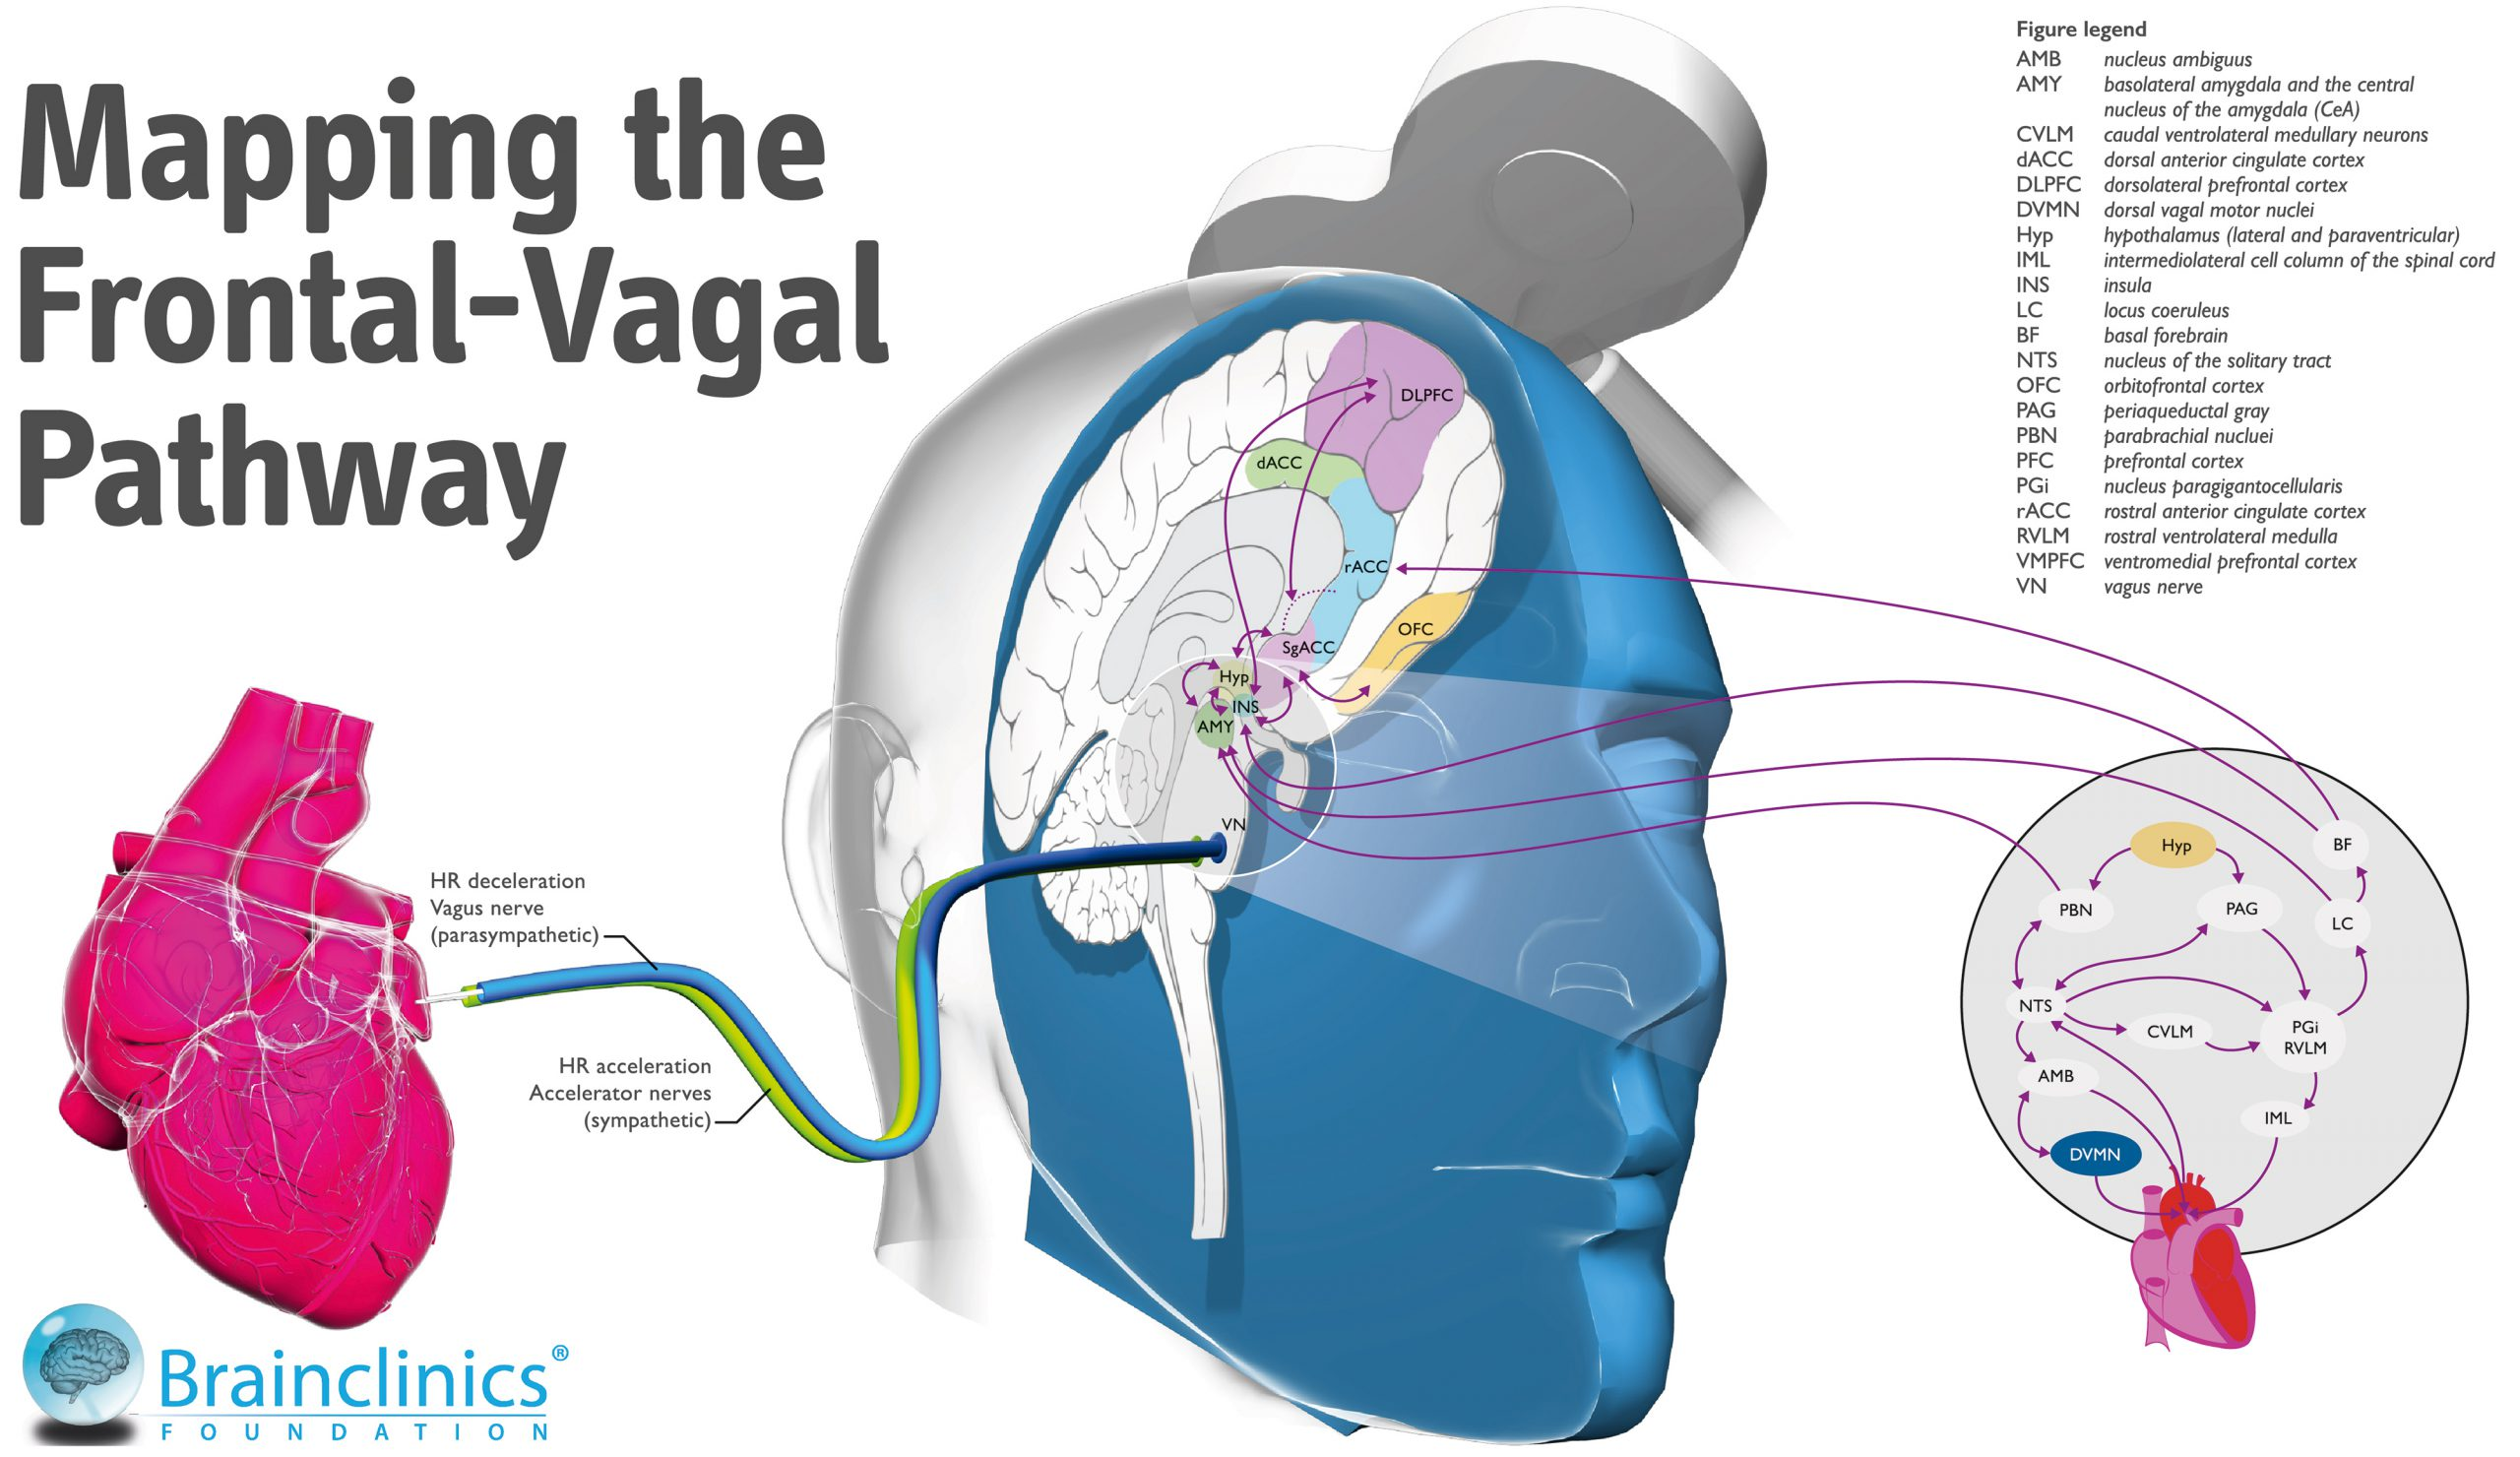 ADHD depression research, personalized medicine: mapping the frontal vagal pathway ncg-tms